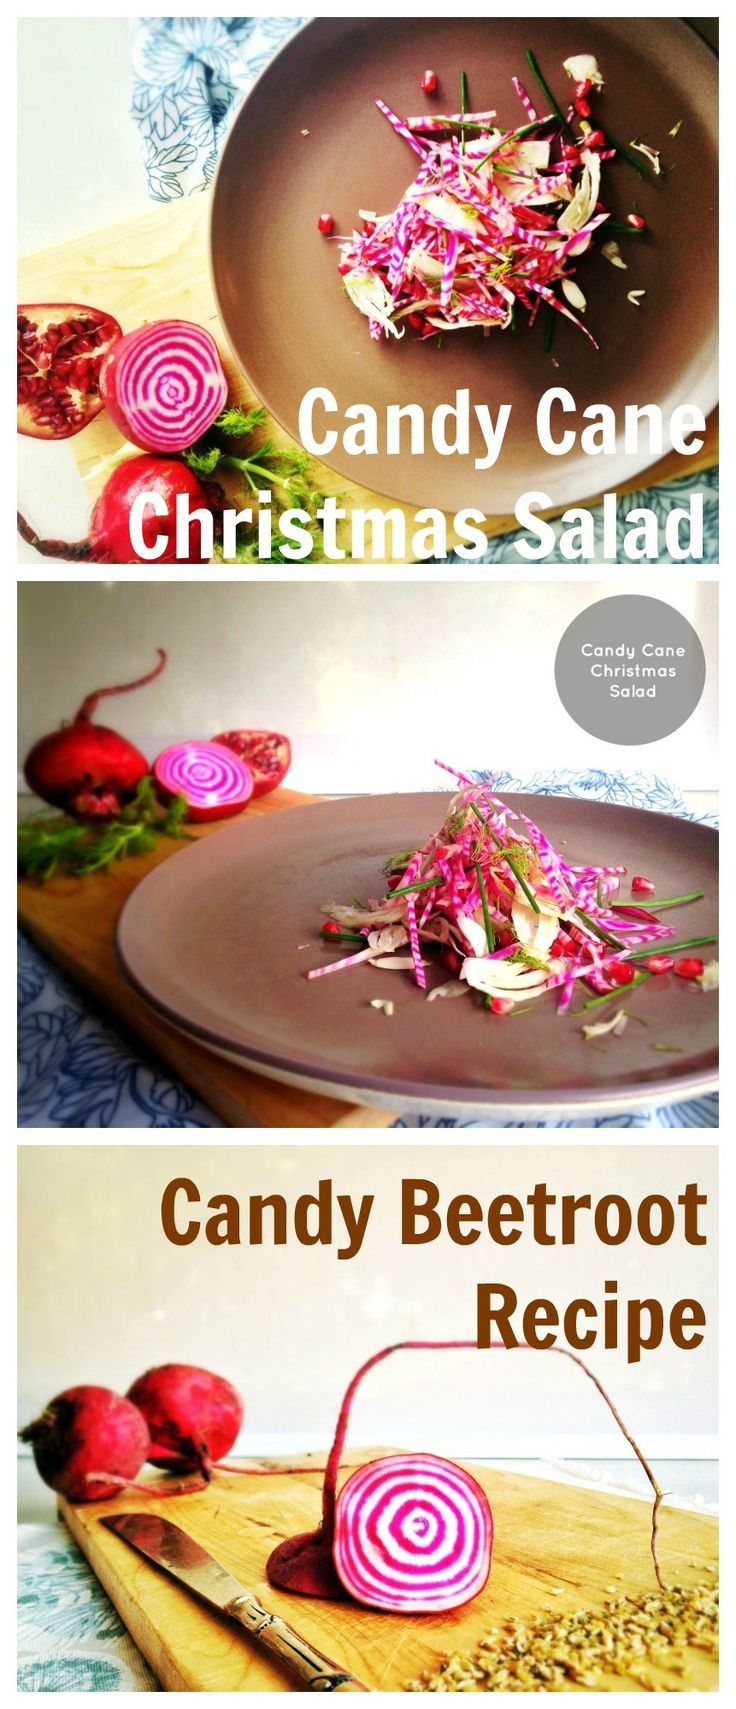 Candy beetroot salad, candy cane inspired salad, healthy christmas recipe for the holidays. Perfect salad for ham or turkey. Impress with the Unusual this year. Raw, gluten free, vegan, dairy free and delicious. Click here for recipe on Eat Raise Love http://www.eatraiselove.com/eat/candy-cane-christmas-salad/